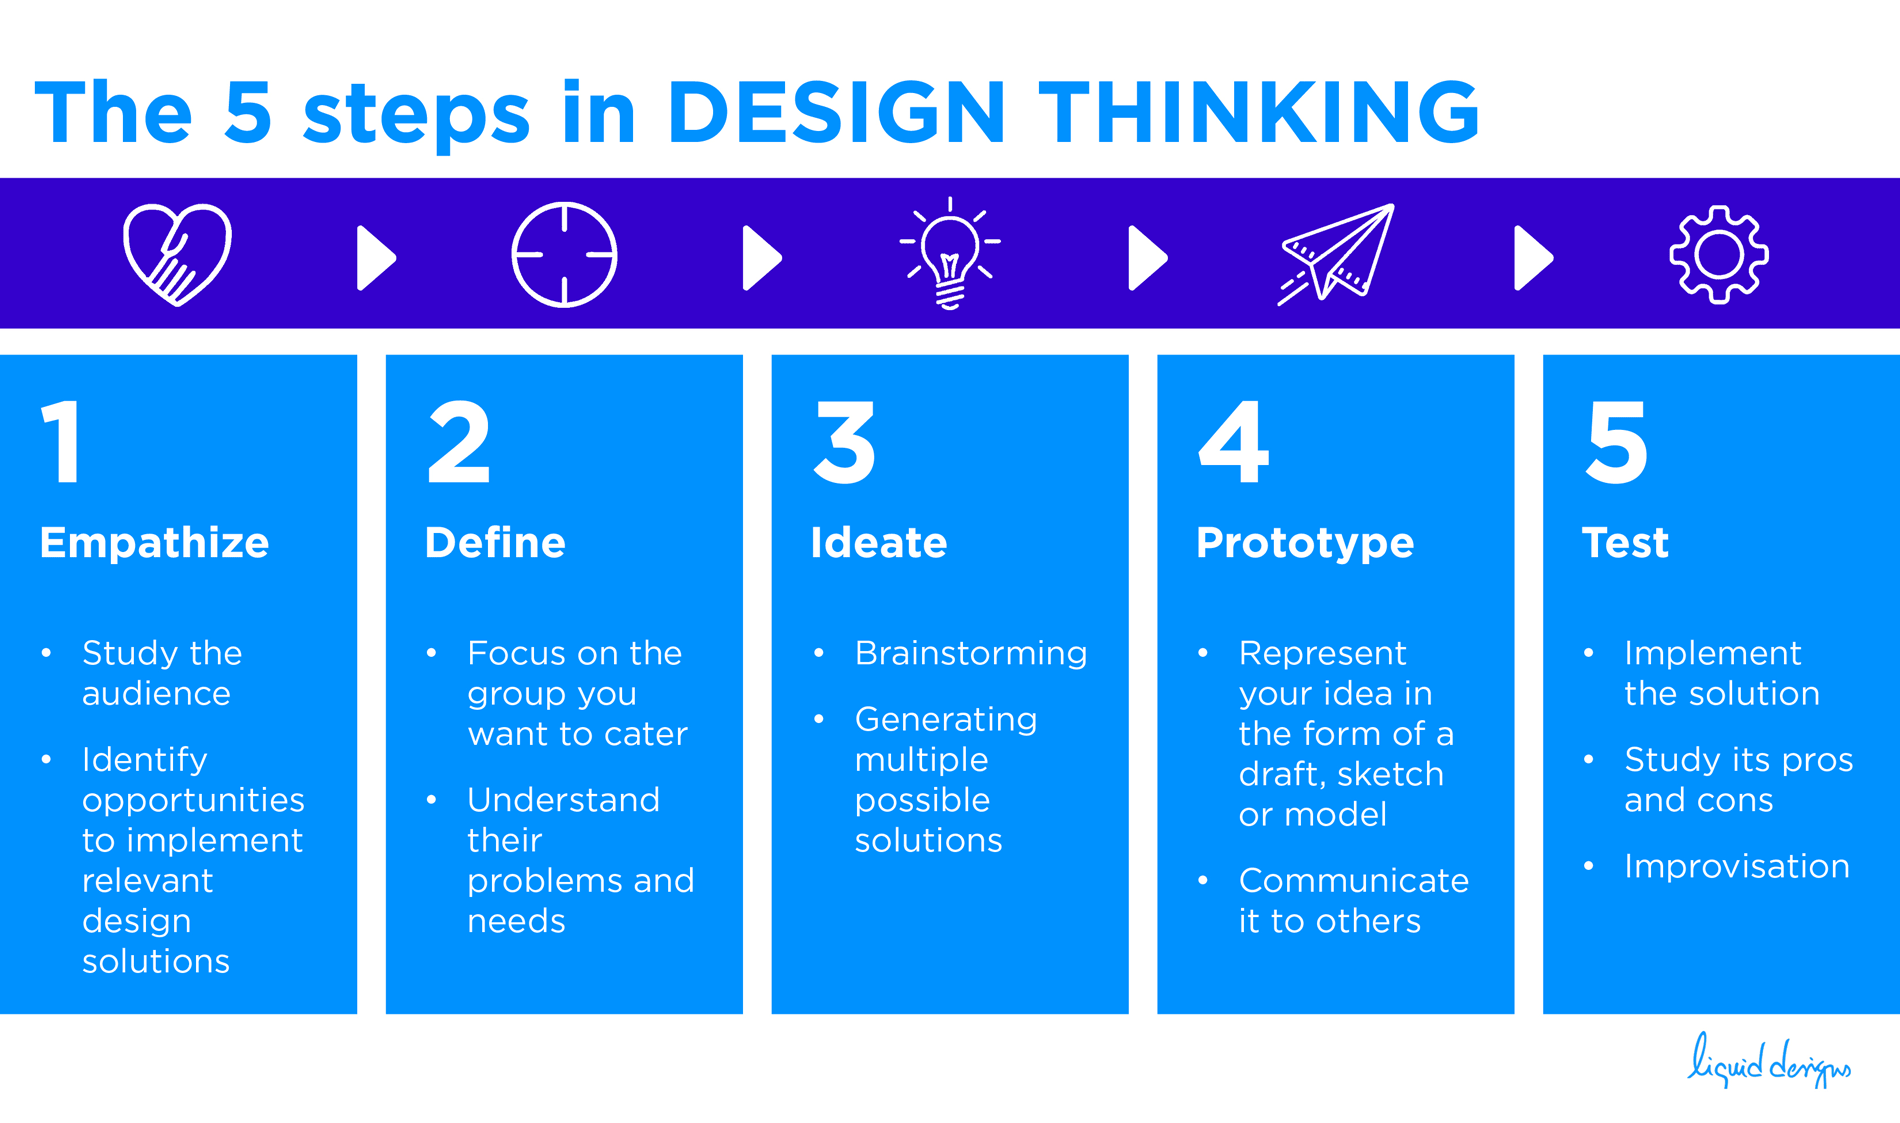 5 Steps in Design Thinking